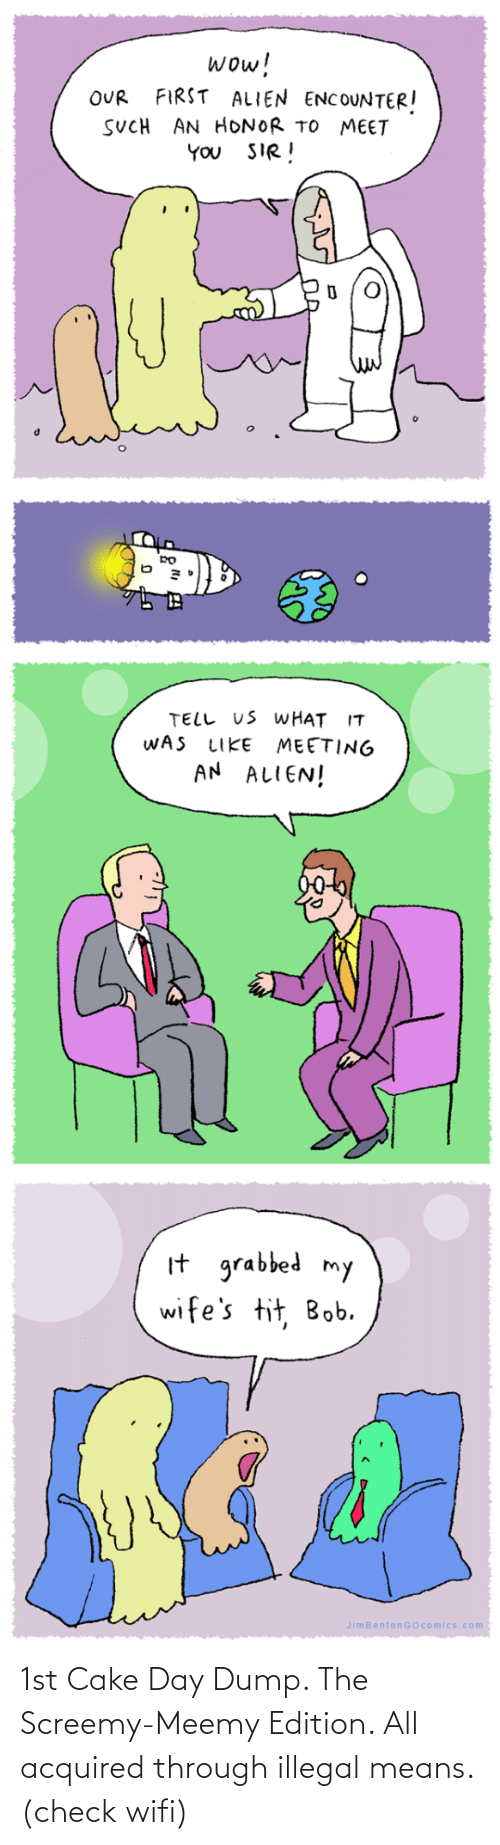 You Sir: wow!  FIRST ALIEN ENCOUNTER!  OUR  SUCH AN HONOR TO MEET  YOU SIR!  TELL US WHAT IT  WAS  MEETING  AN ALIEN!  LIKE  It grabbed my  wife's tit, Bob.  JimBentonGOcomics.com 1st Cake Day Dump. The Screemy-Meemy Edition. All acquired through illegal means. (check wifi)